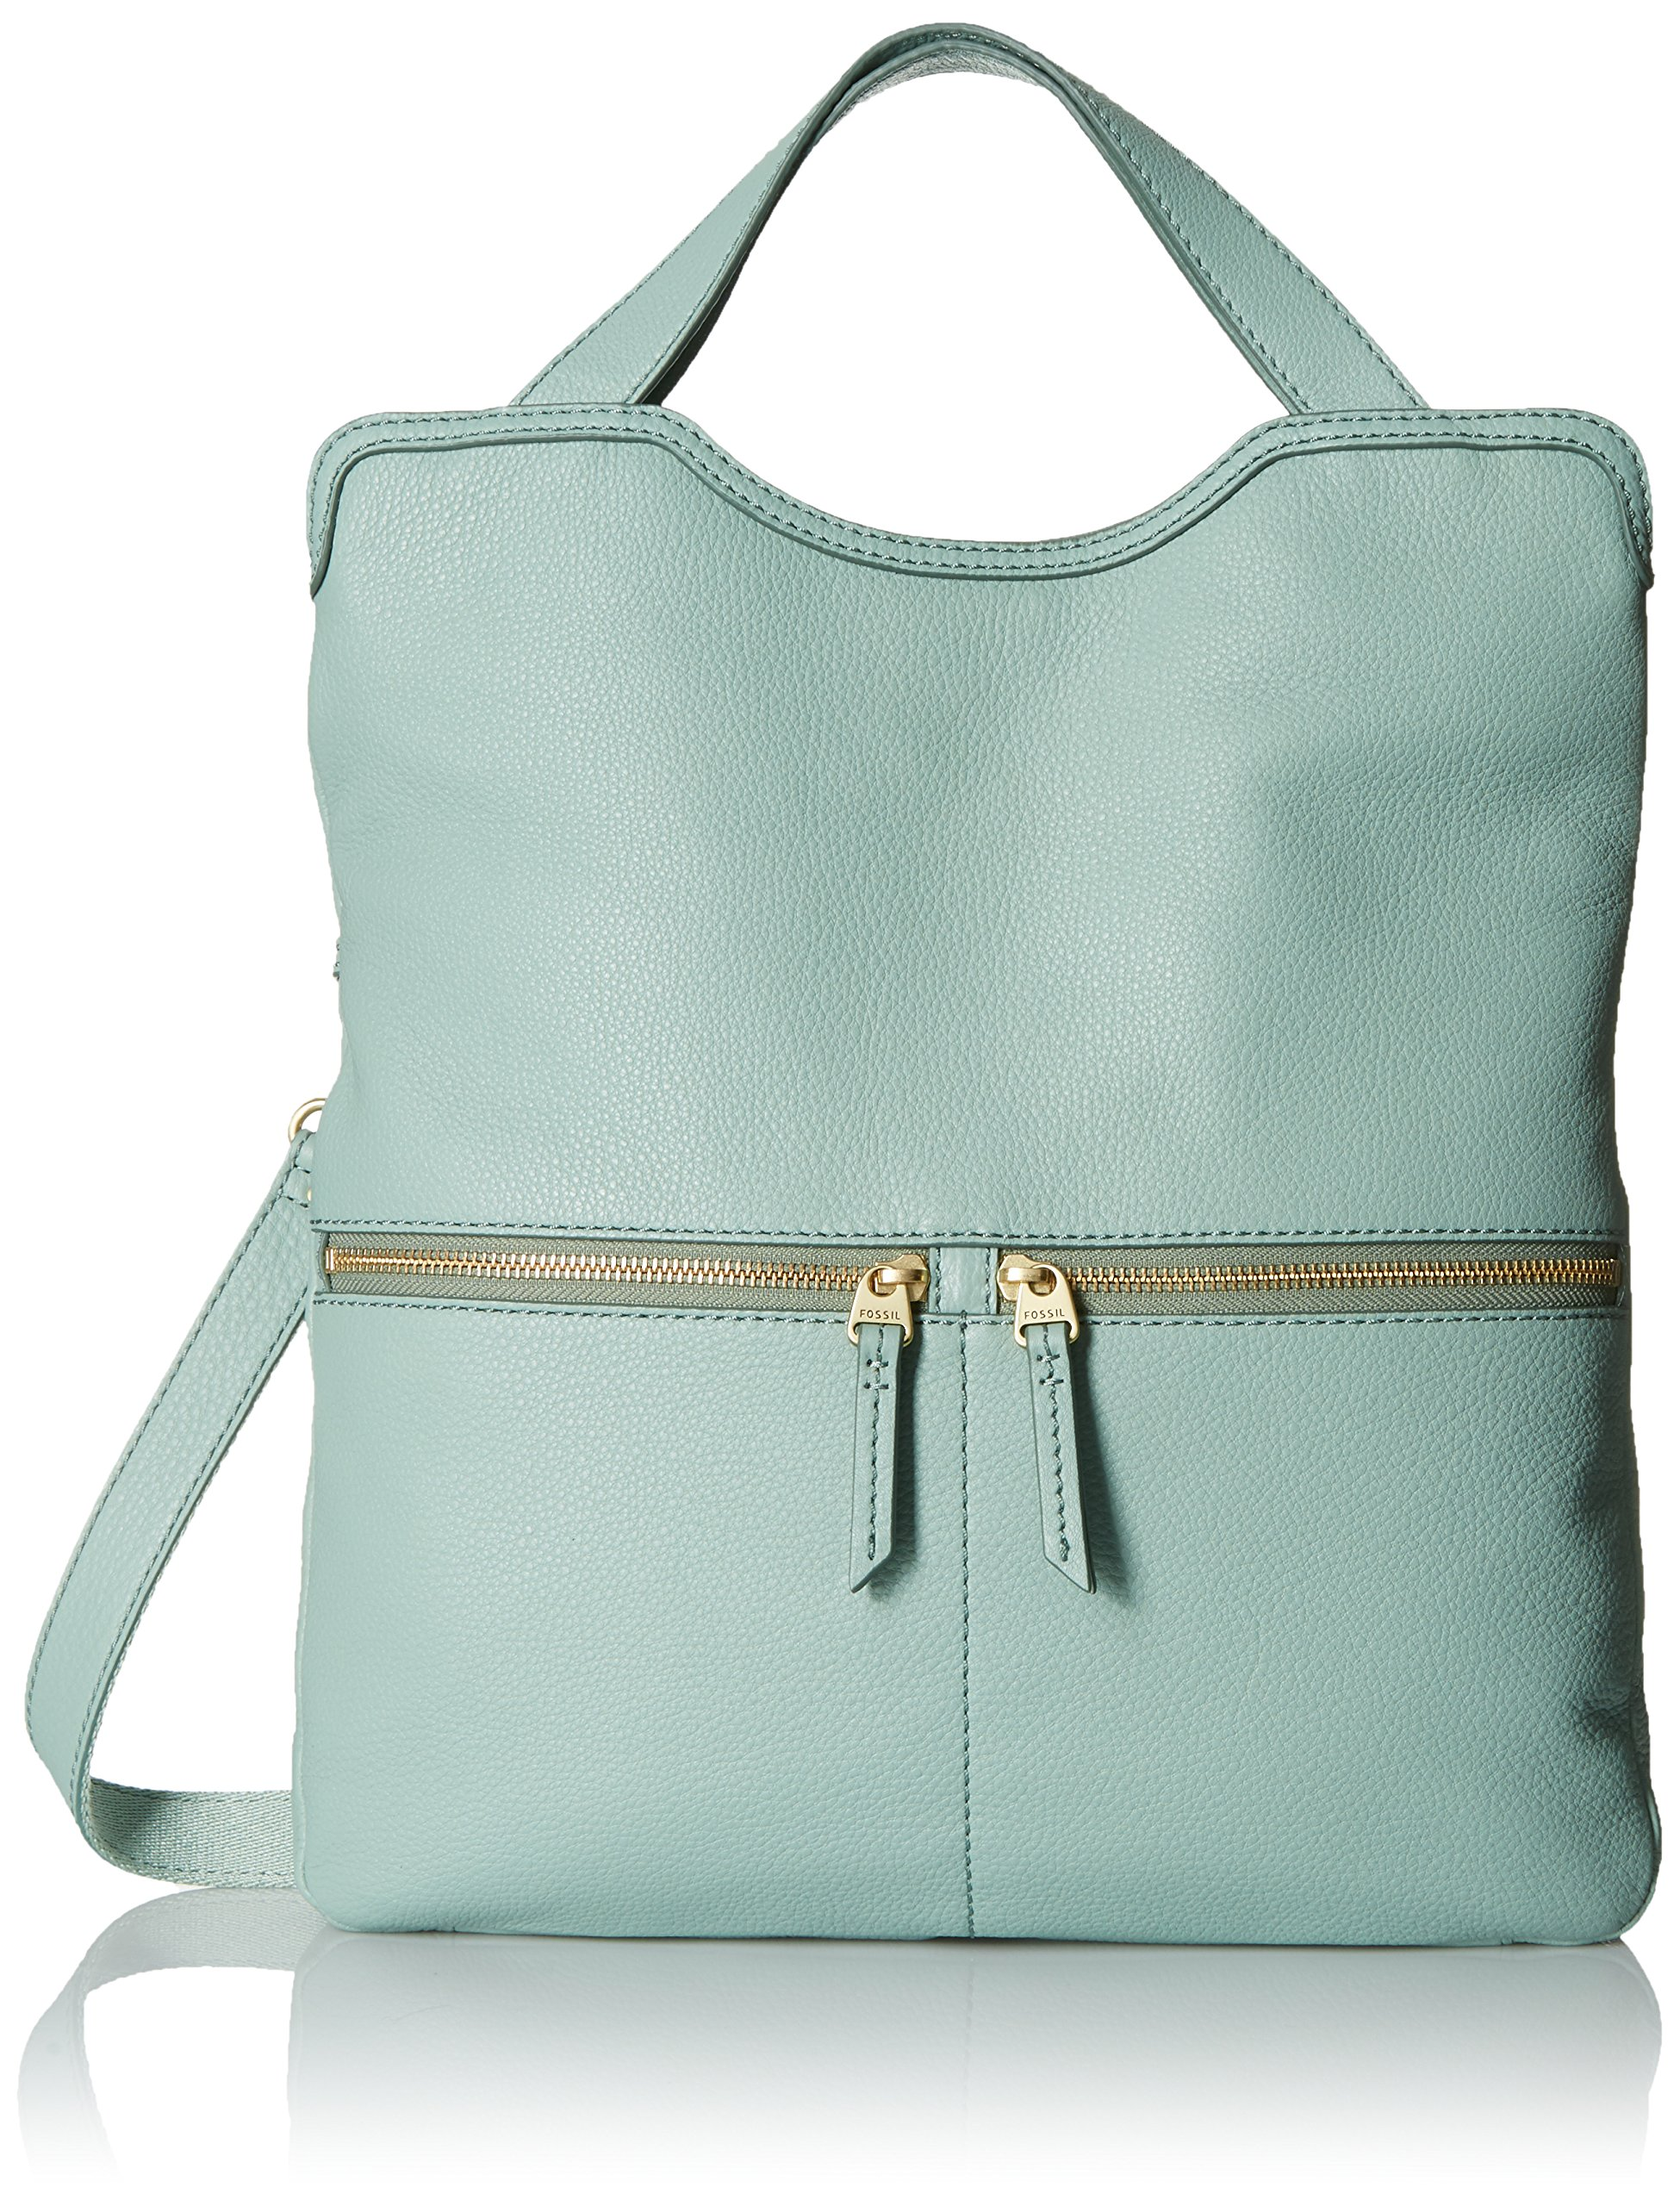 Fossil Erin Foldover Tote, Sea Glass, One Size by Fossil